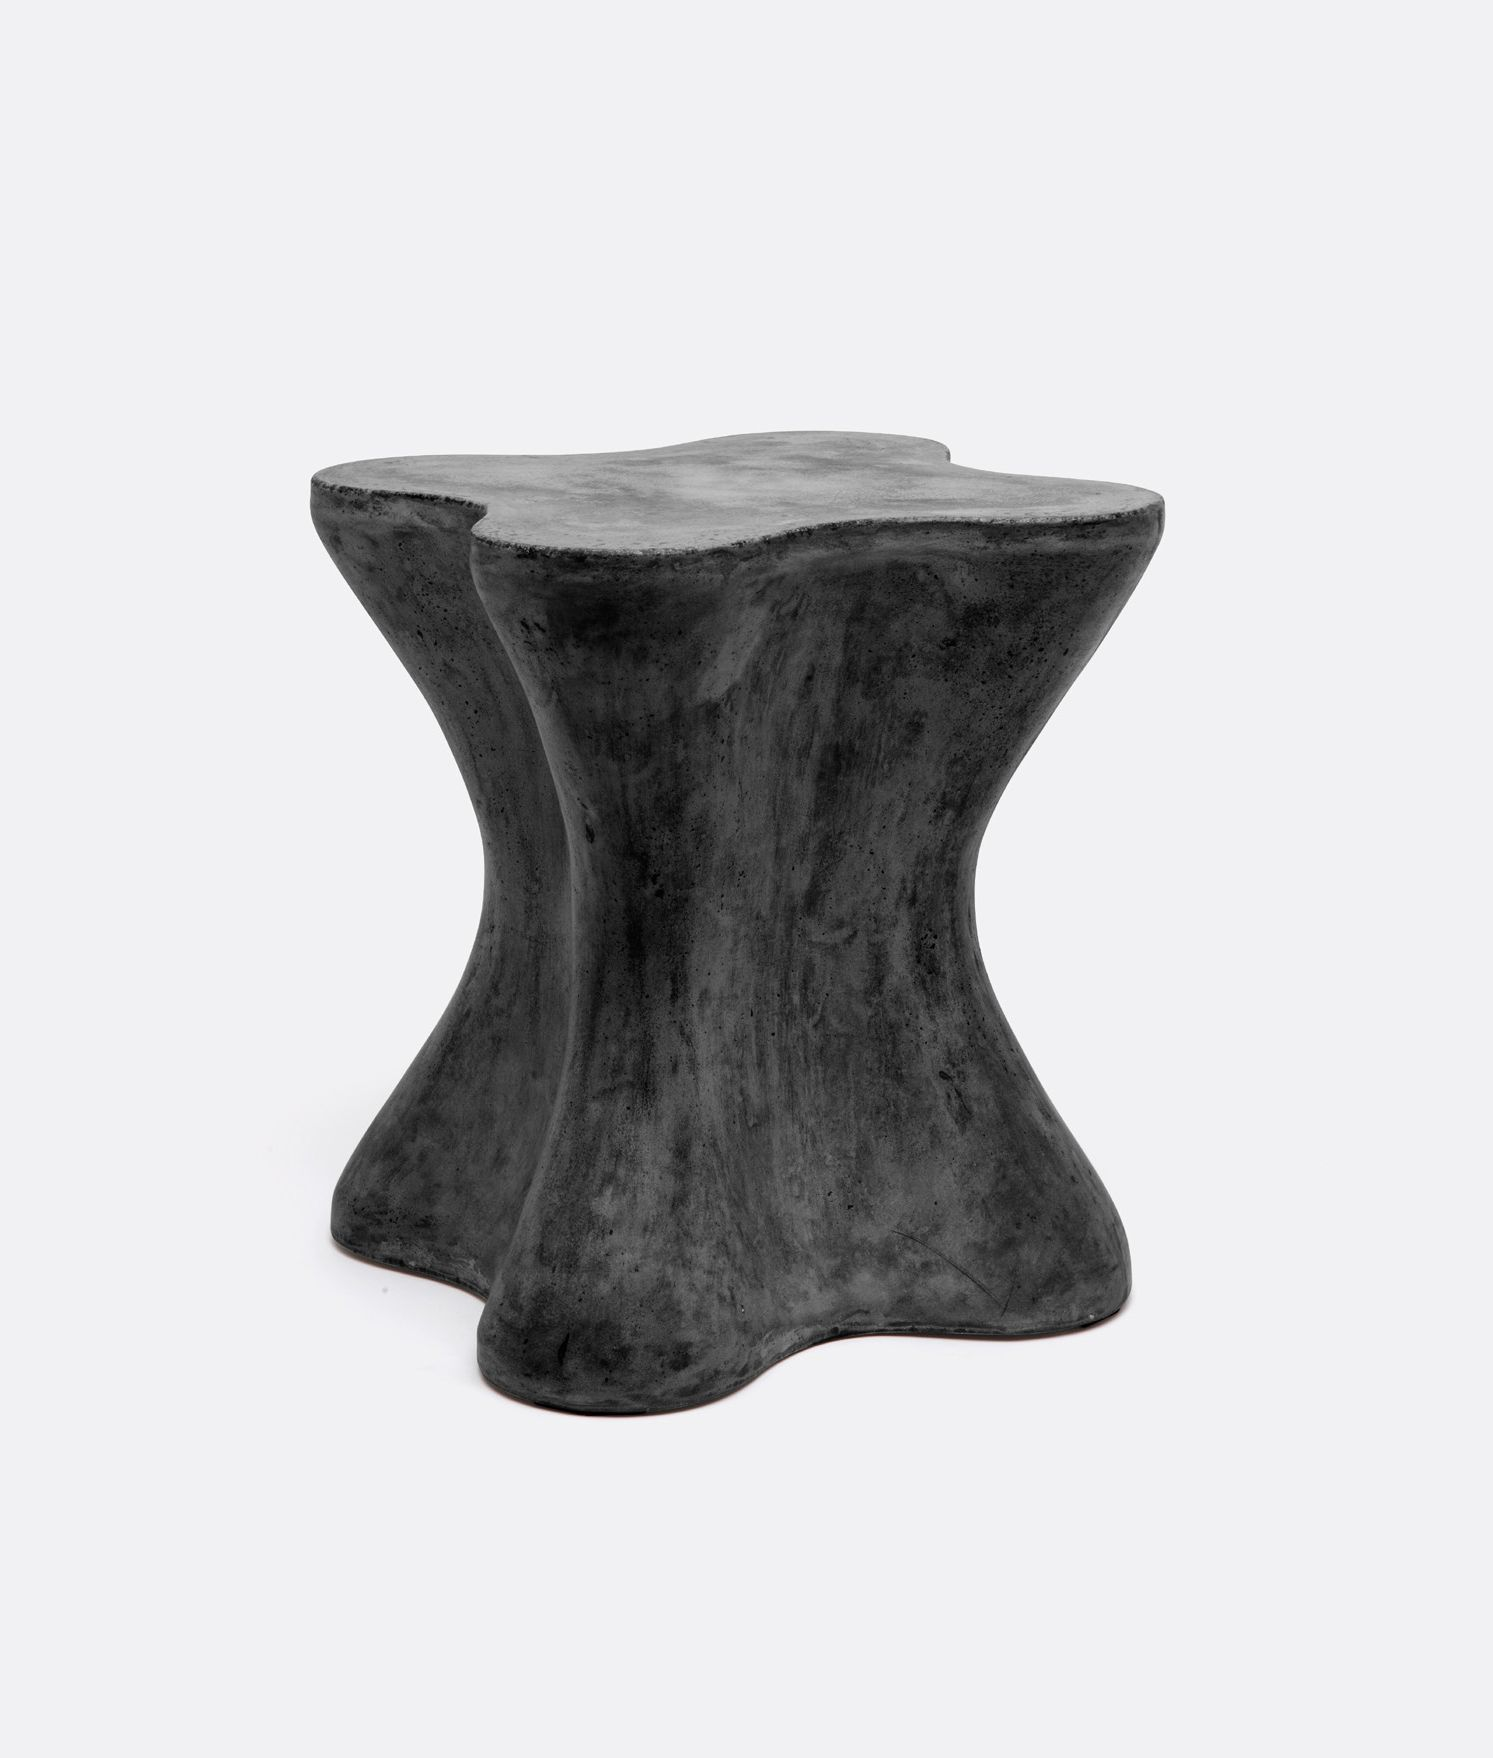 outdoor small arbre concrete side table furniture accent patio stool minor imperfections and cracks expected available dark grey black also large cool light fixtures hurricane